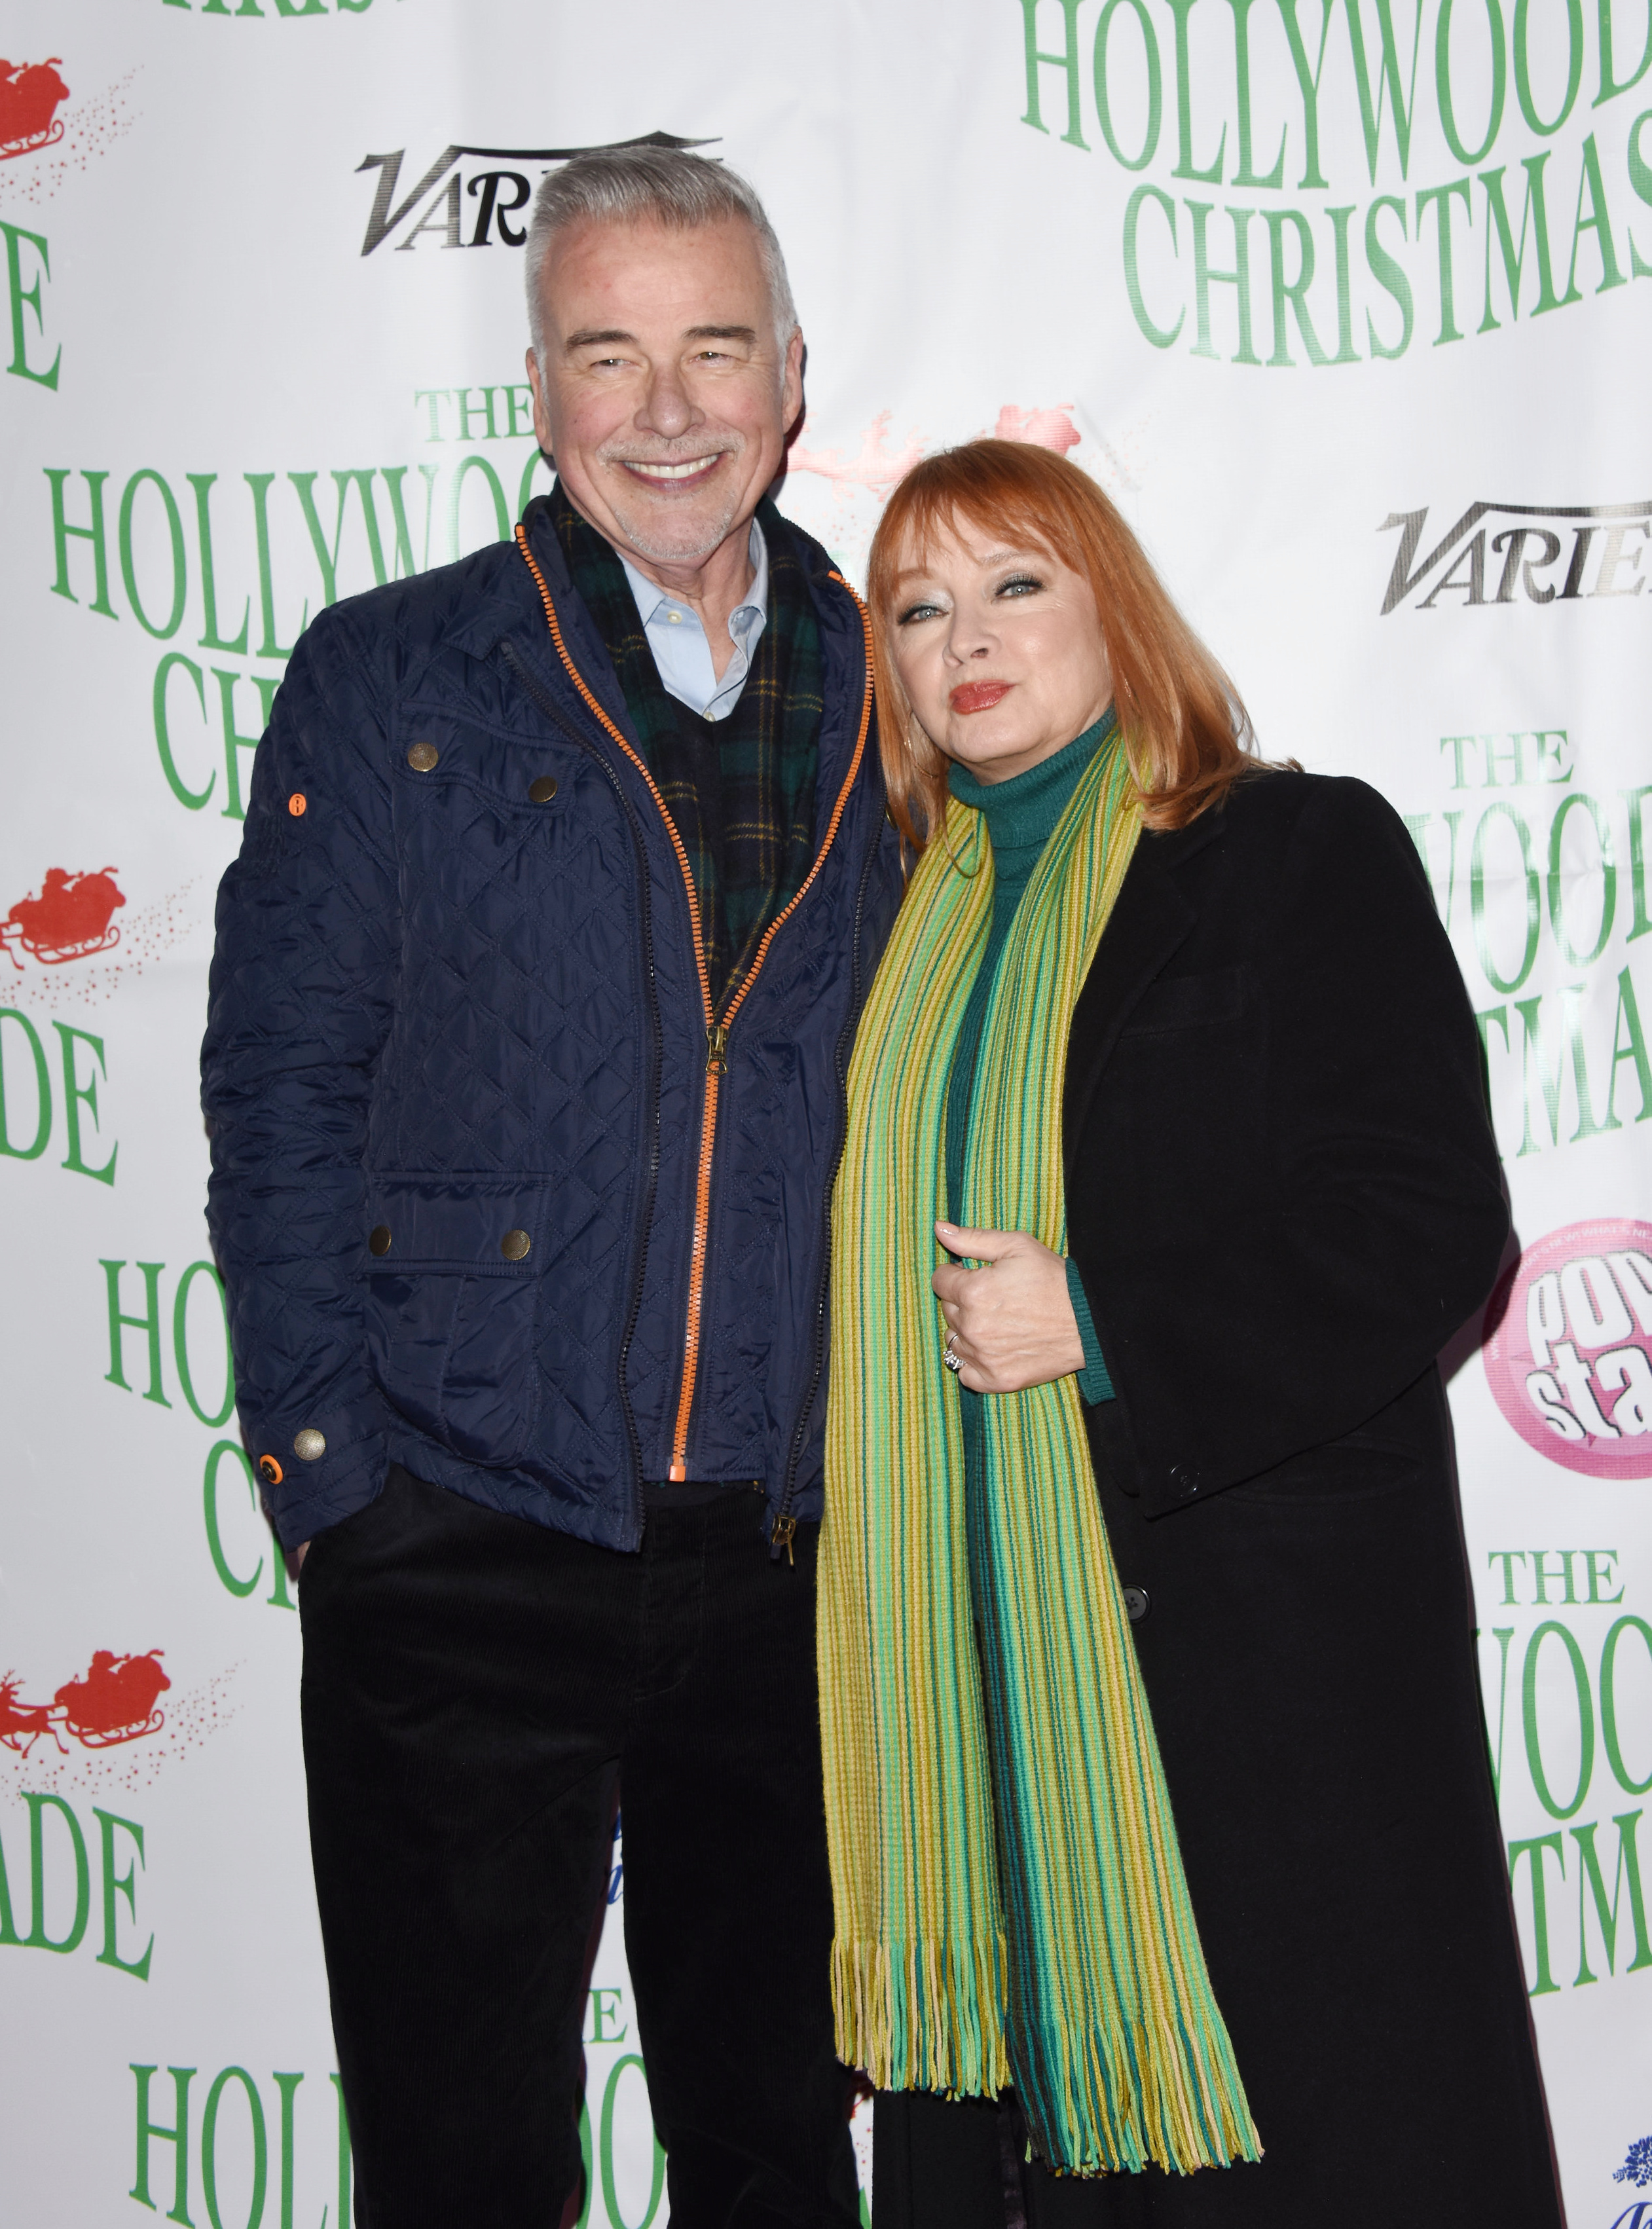 Andrea Evans, Ian Buchanan attends the 88th annual Hollywood Christmas Parade